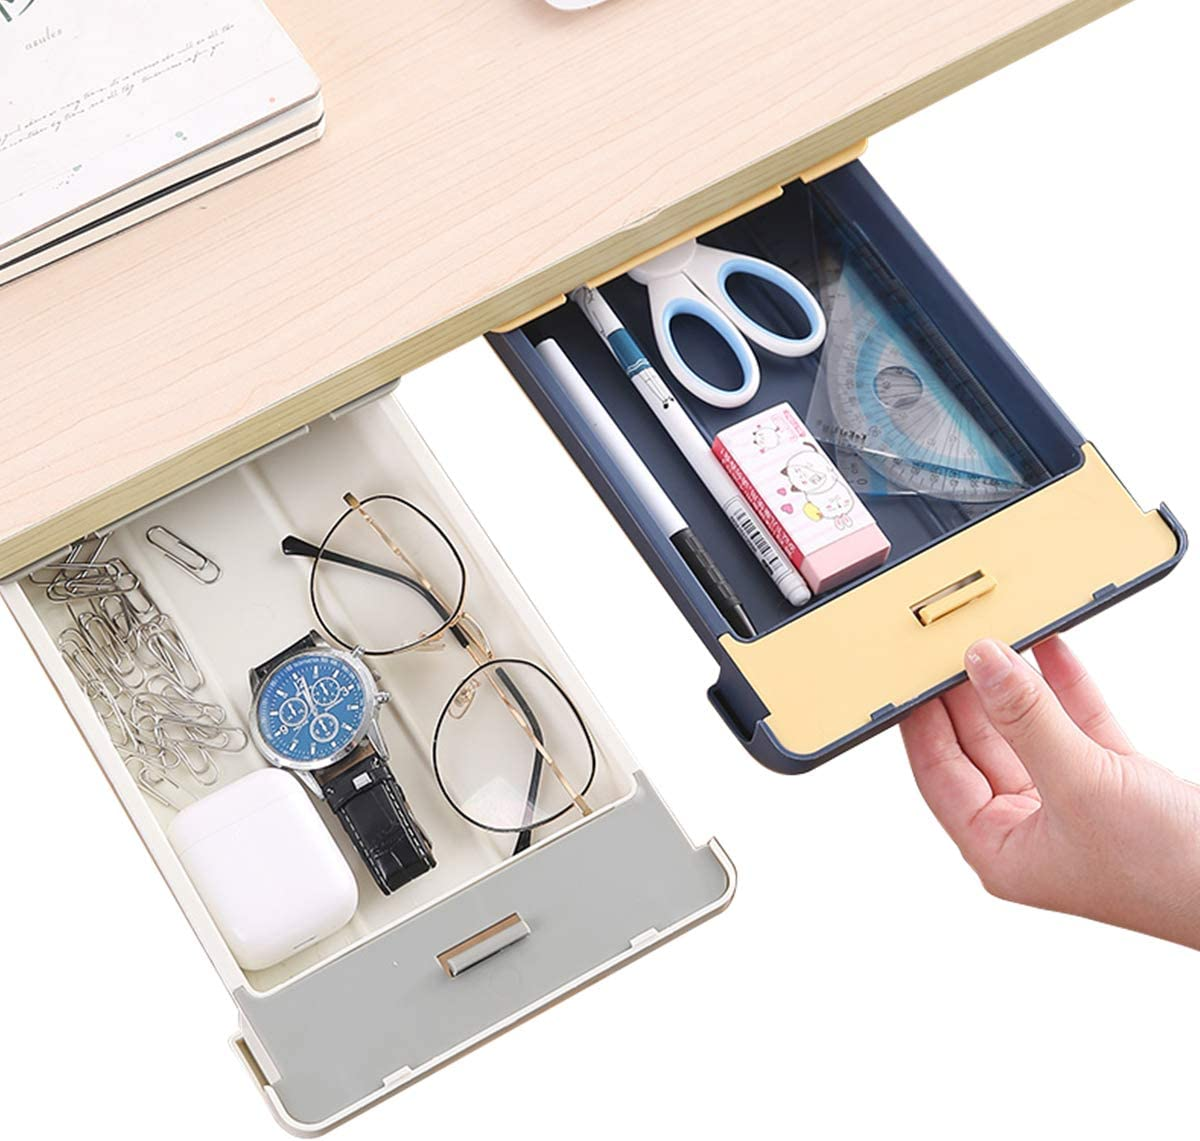 Desk Pencil Drawer Organizer with Buckle, Large Capacity Pop-Up Student Storage Hidden Desktop Drawer Tray, Great for Office School Home Desk (2-Pack) (Gray)